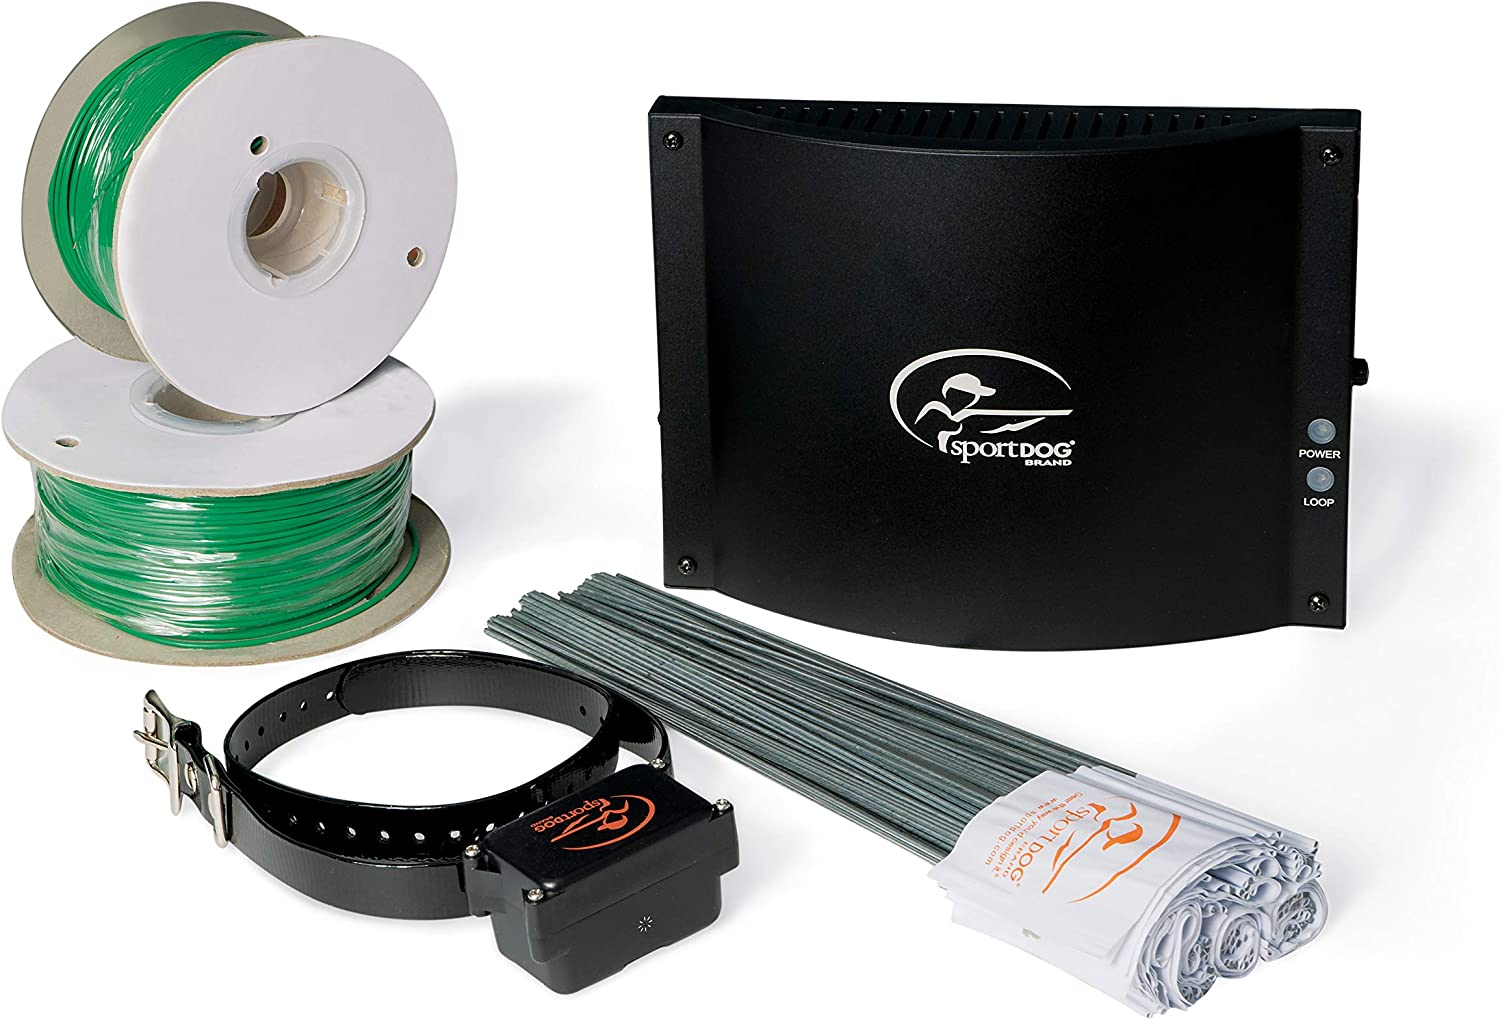 SportDog In-Ground fence system from parent company